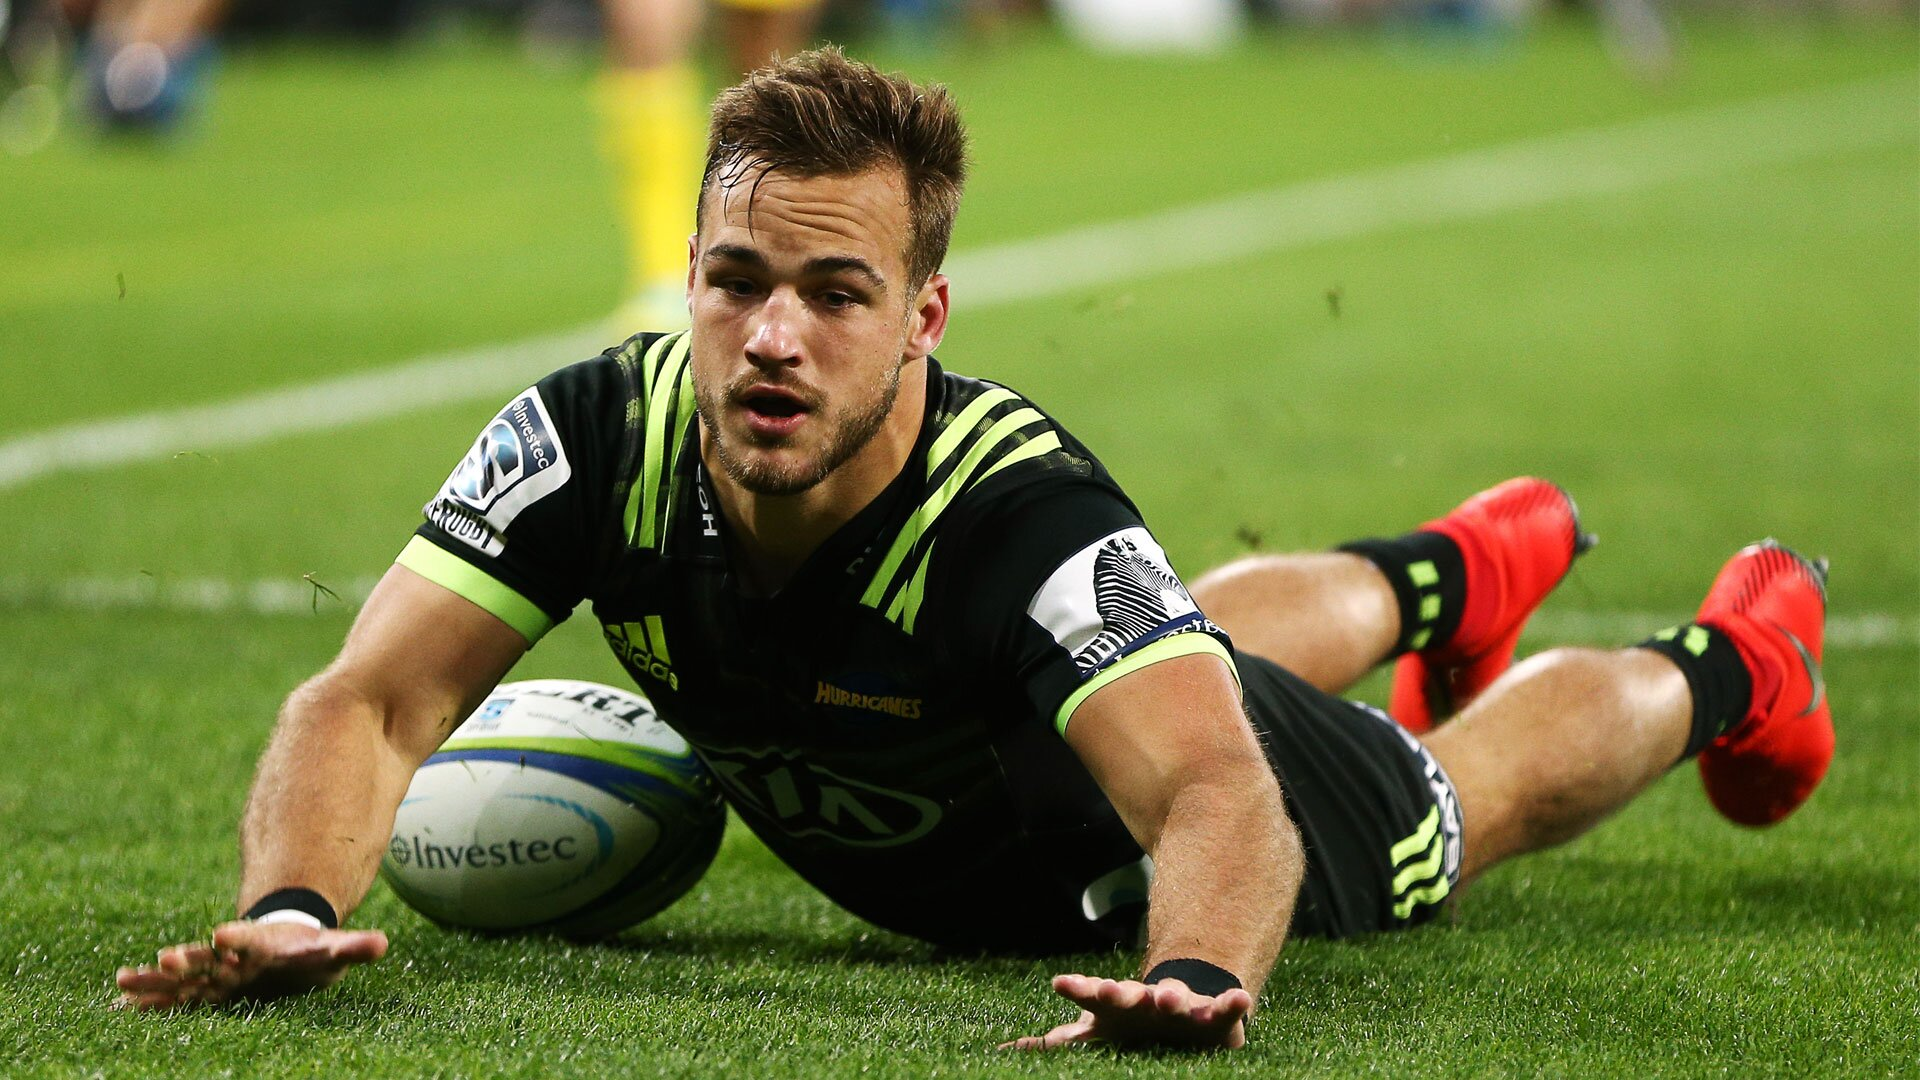 Hurricanes lock in trio of players for 2020 - including rapid wing, Wes Goosen